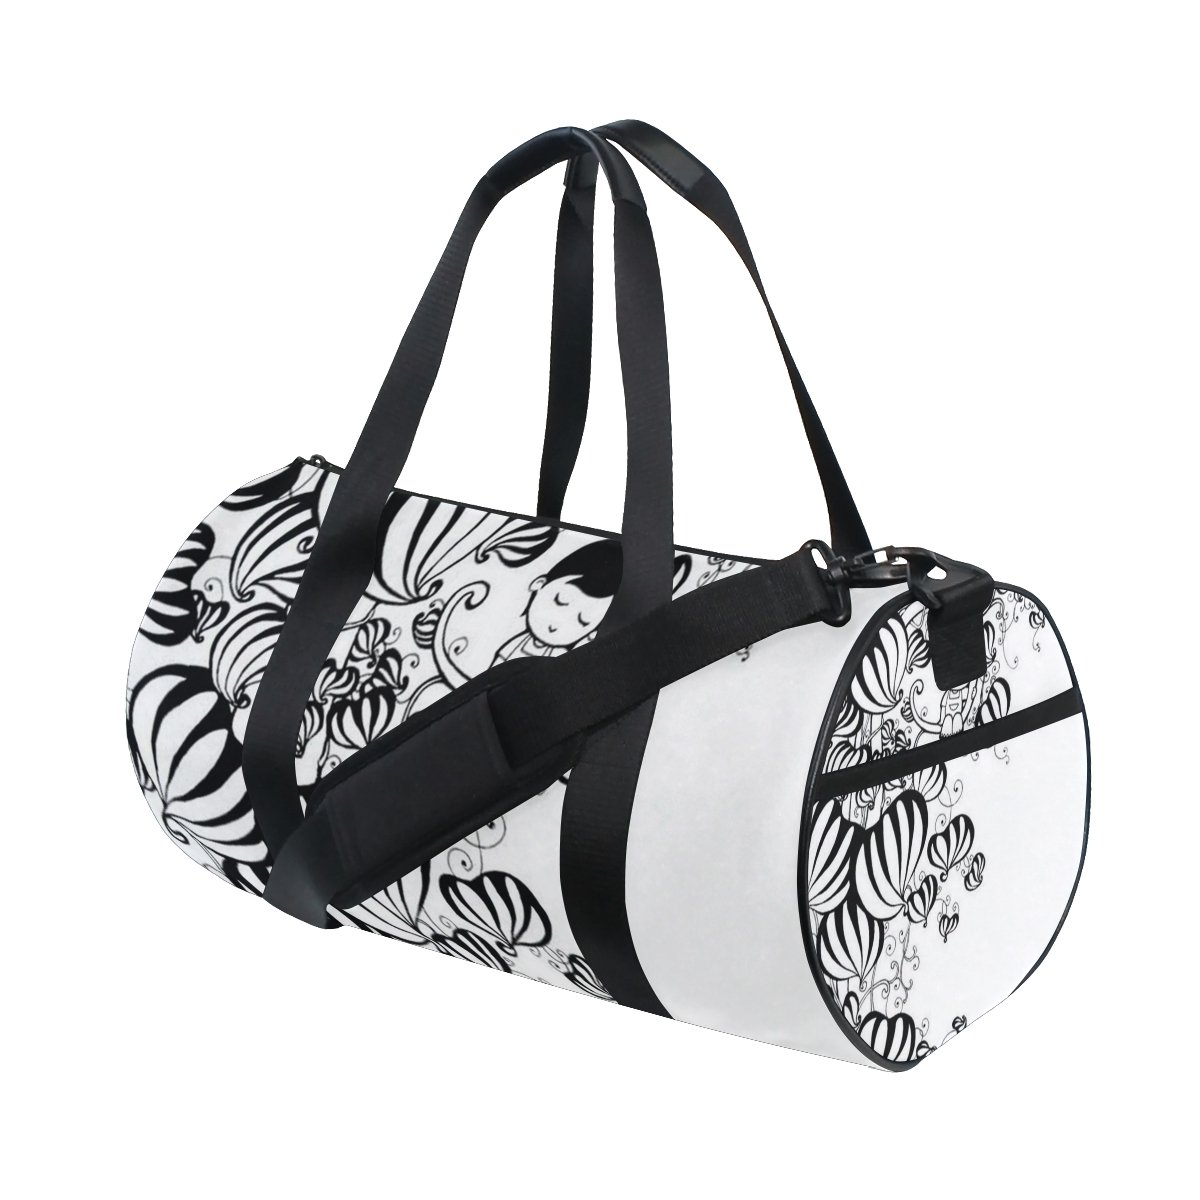 Cartoon Boy Black White Lightweight Canvas Sports Bag Duffel Yoga Gym Bags